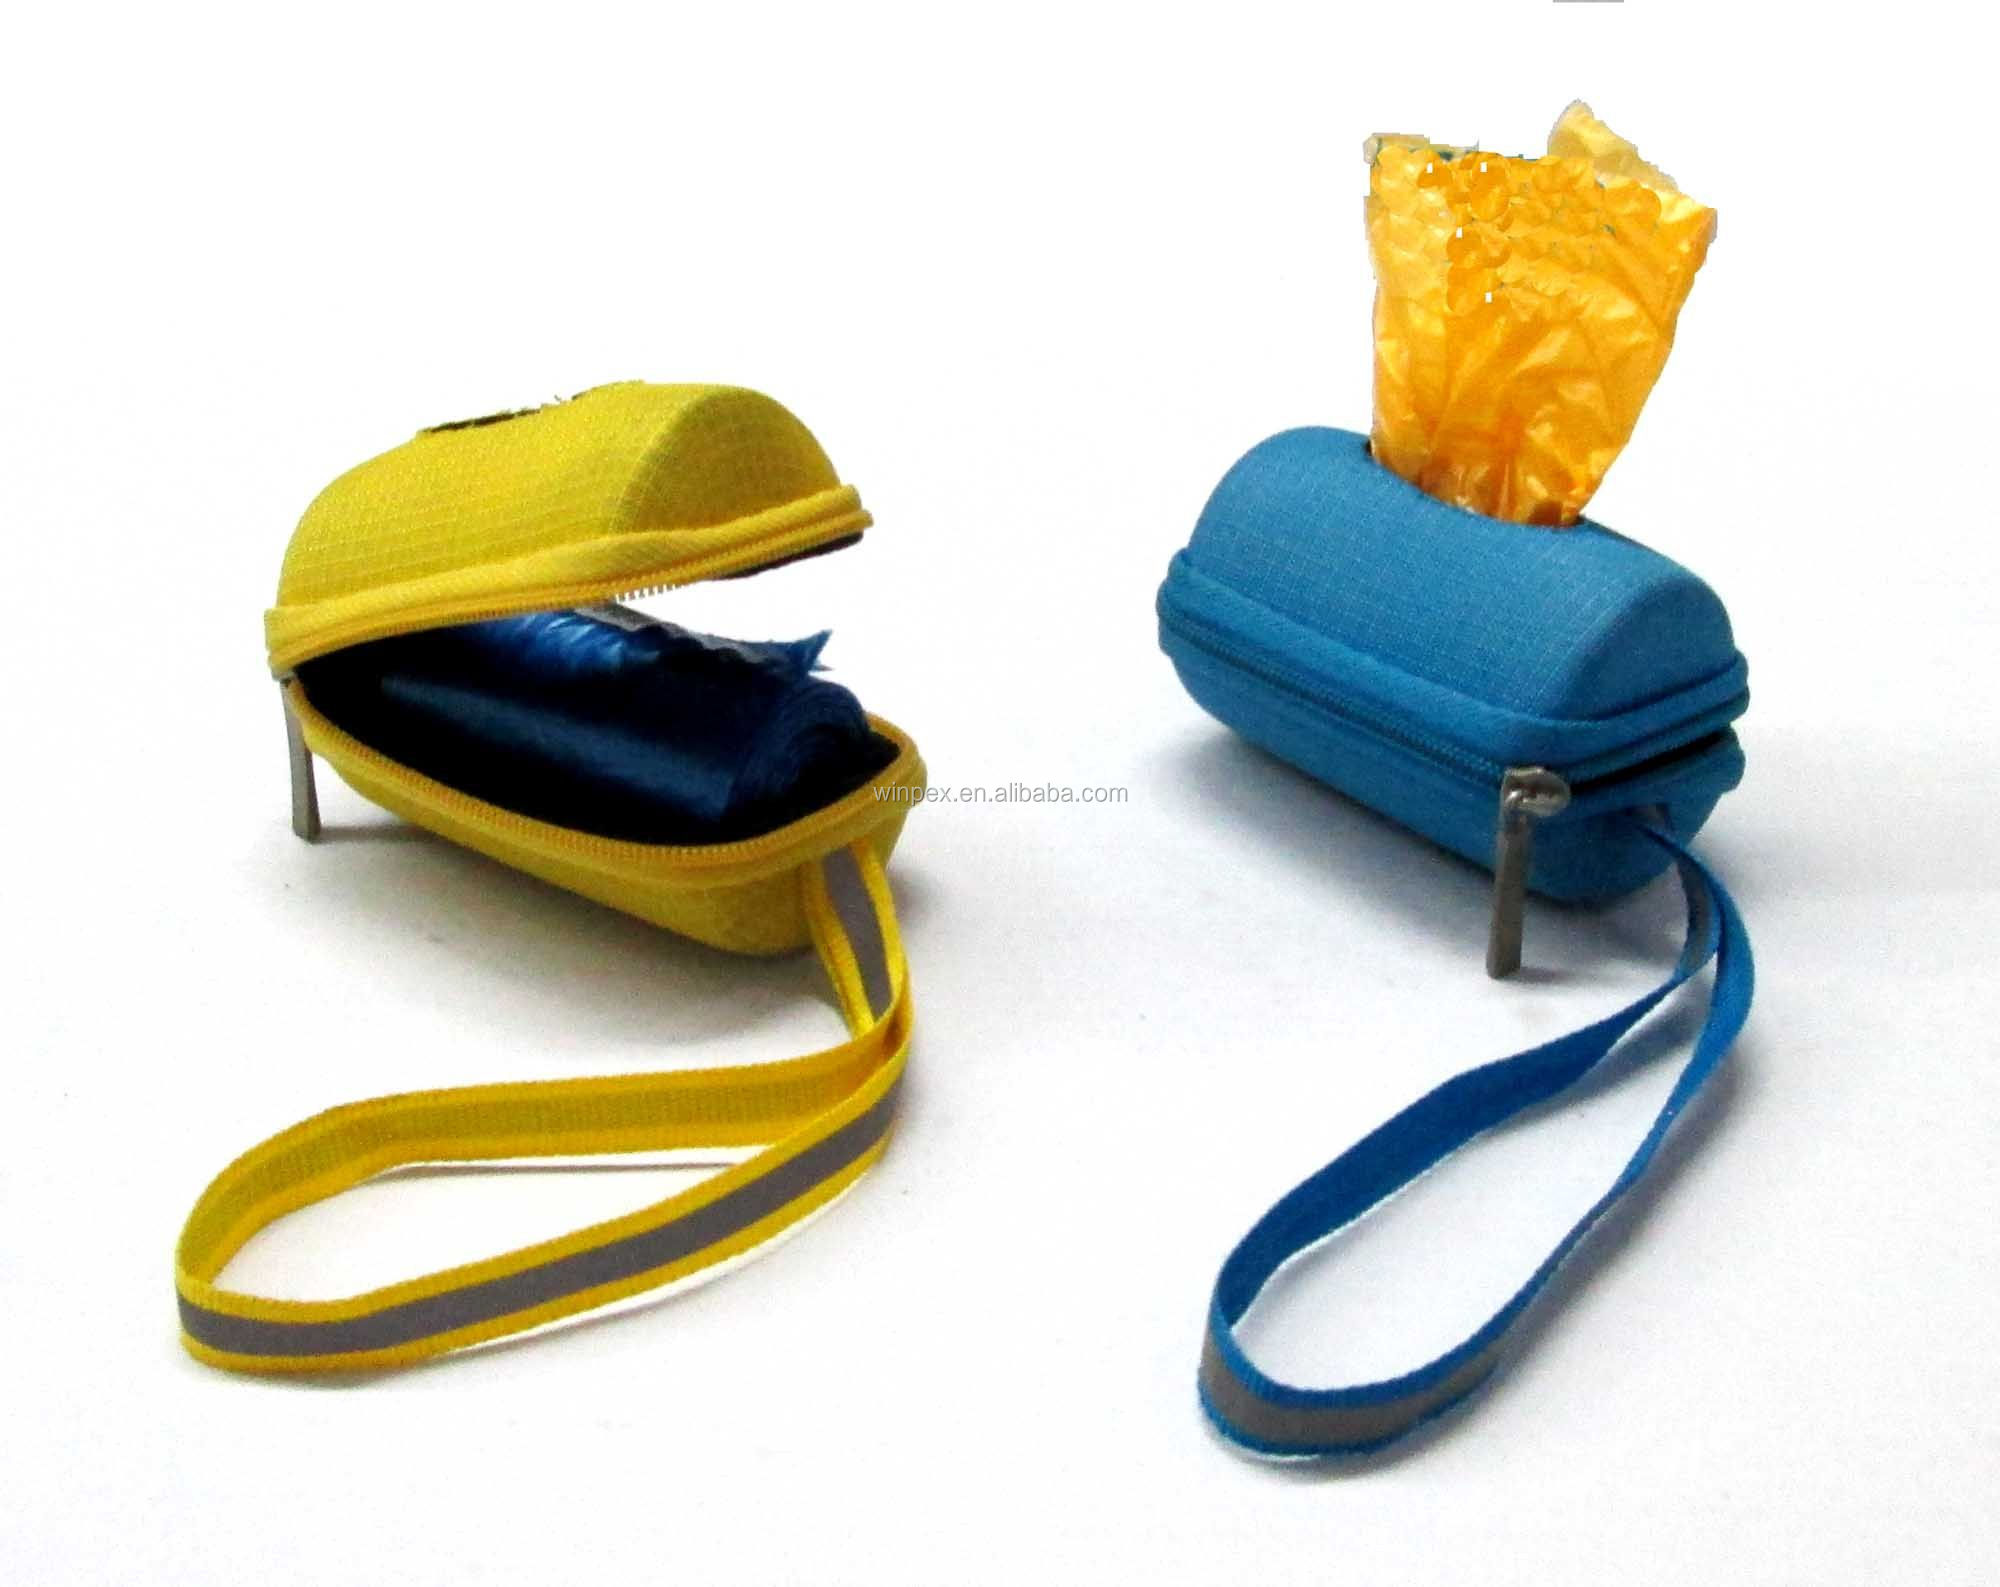 Dog Waste Bag Holder Wallet With Dispenser